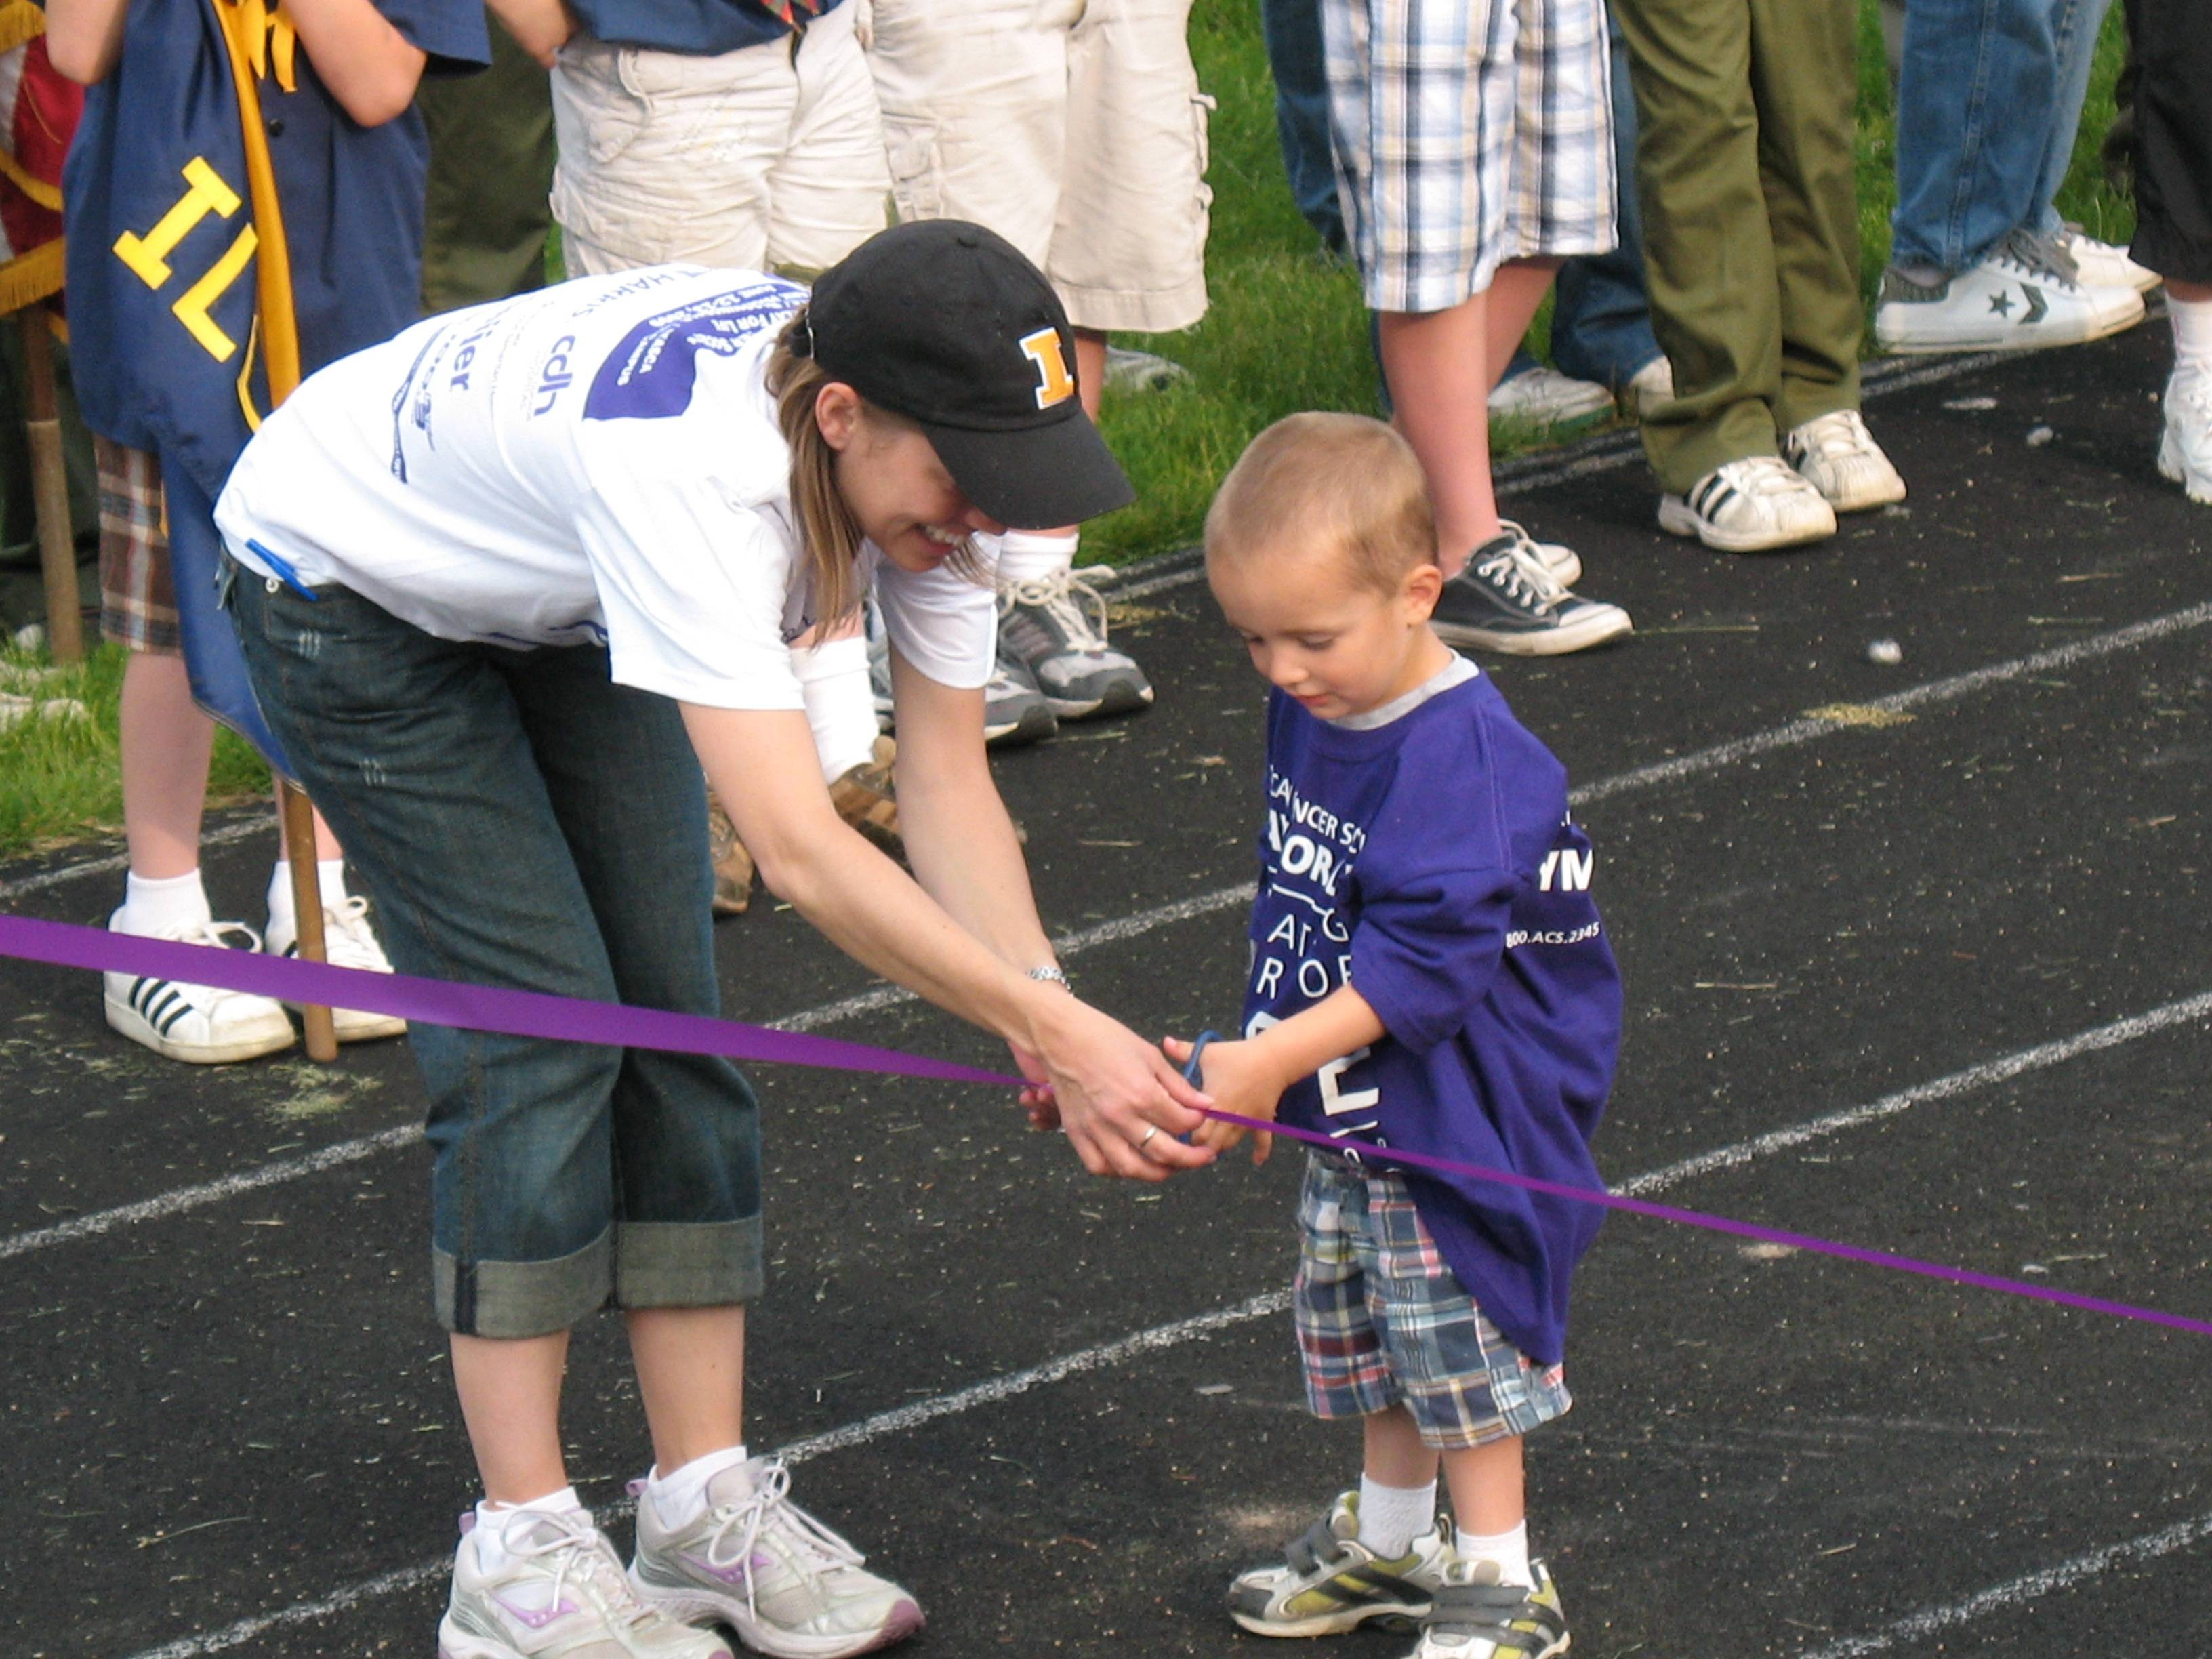 Cancer Survivior Joey Gilliam cuts the ribbon at the Relay For Life Roselle, Bloomingdale, Medinah and Itasca opening ceremony.